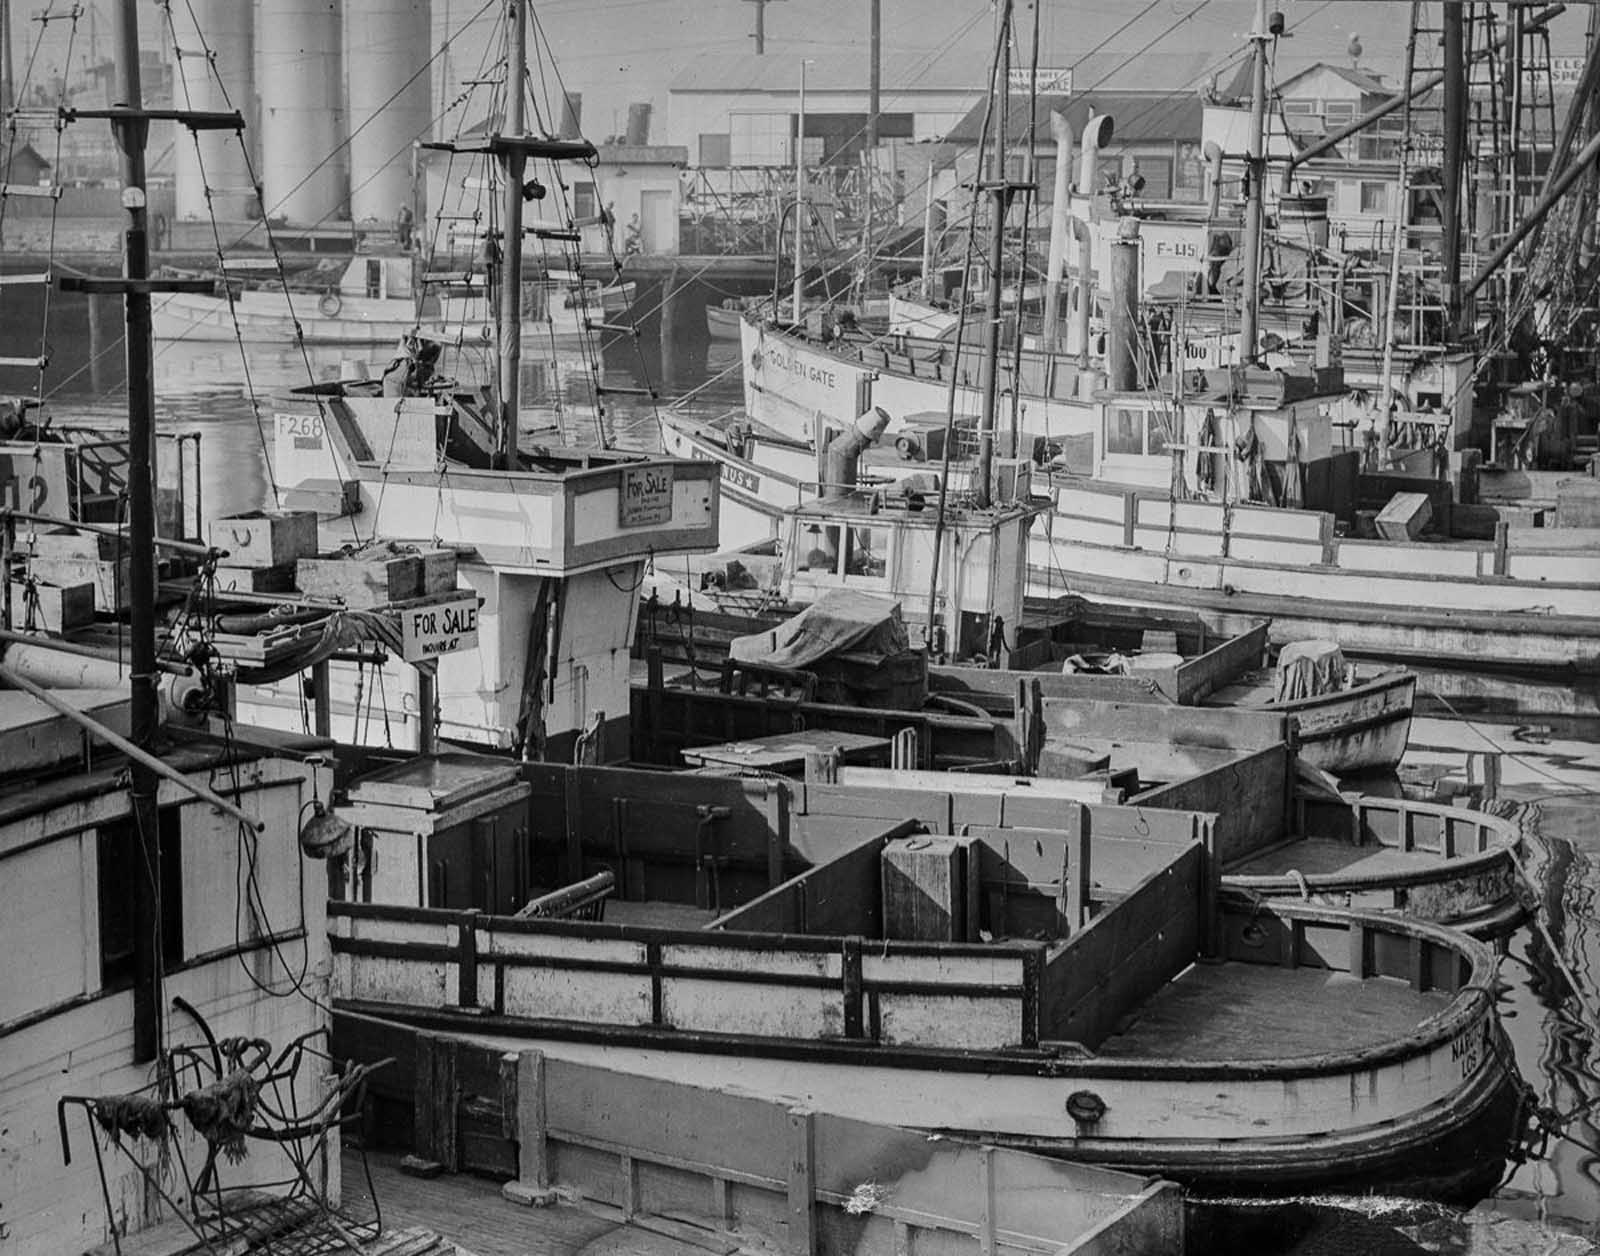 Japanese-American-owned fishing boats sit idle in Los Angeles harbor.